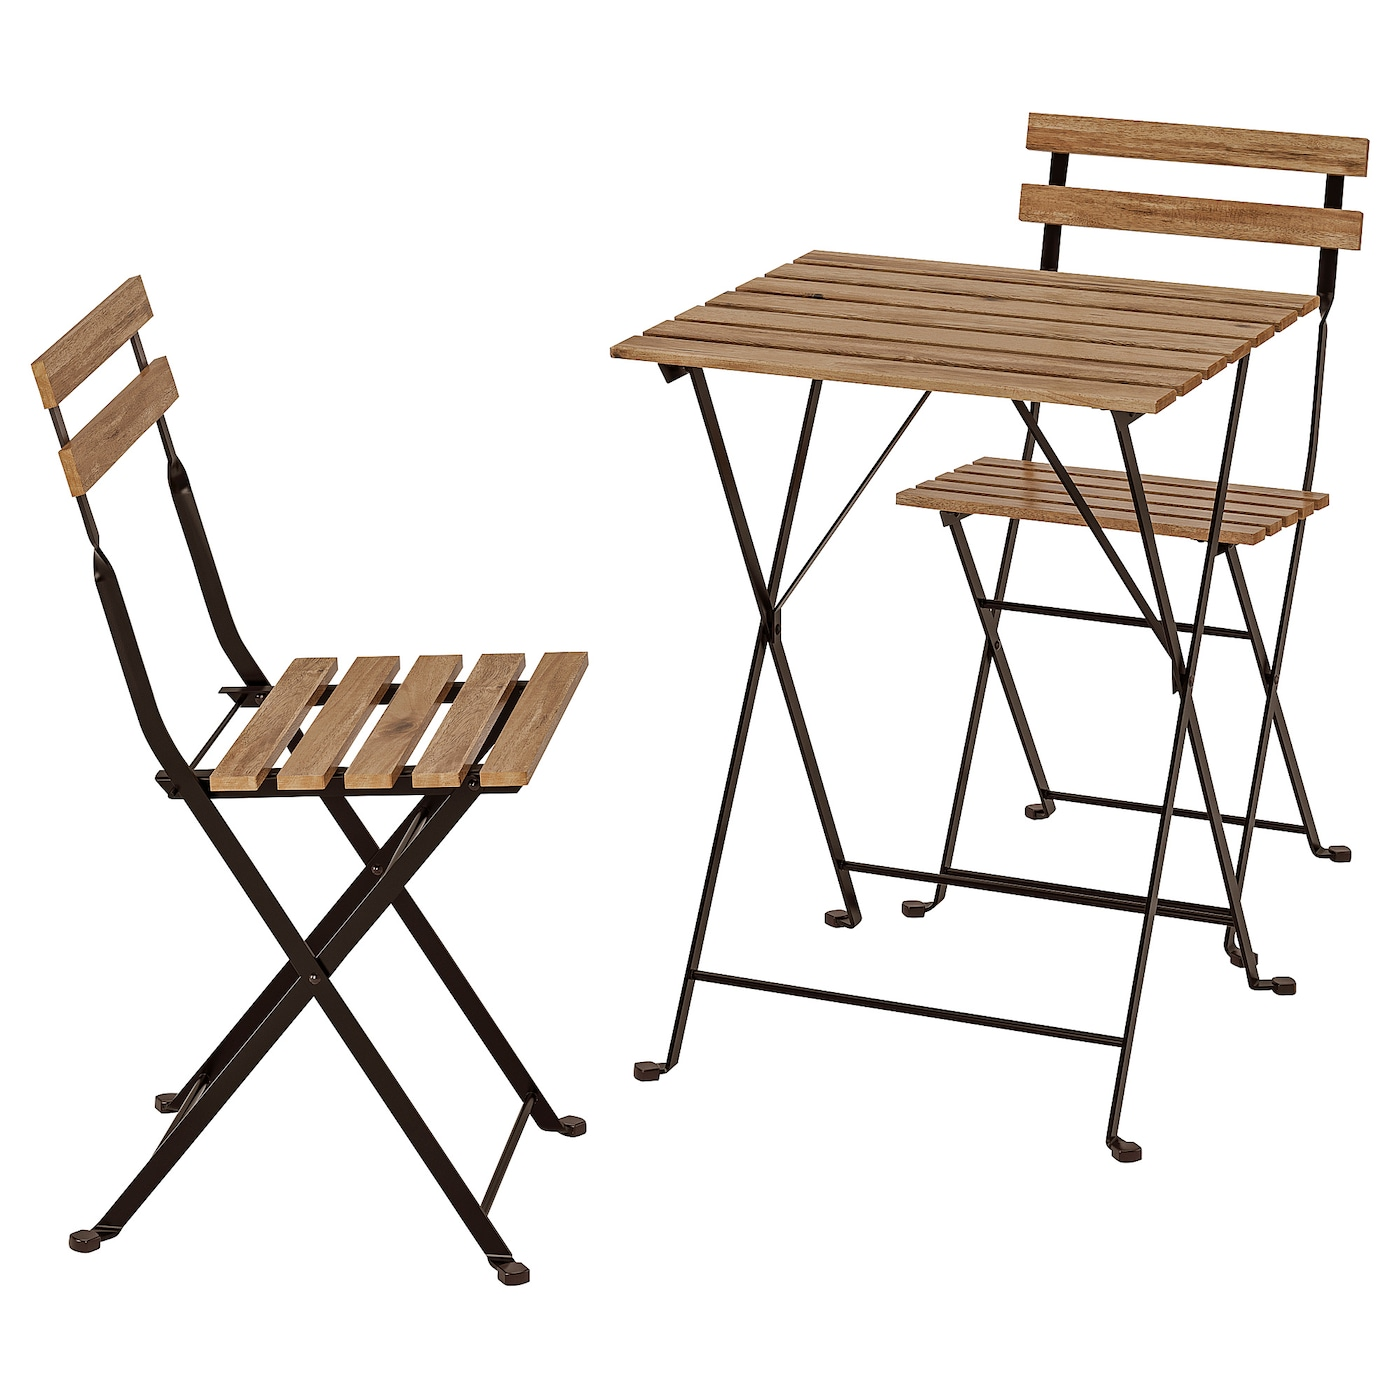 TÄRNÖ Bistro set, outdoor - black/light brown stained